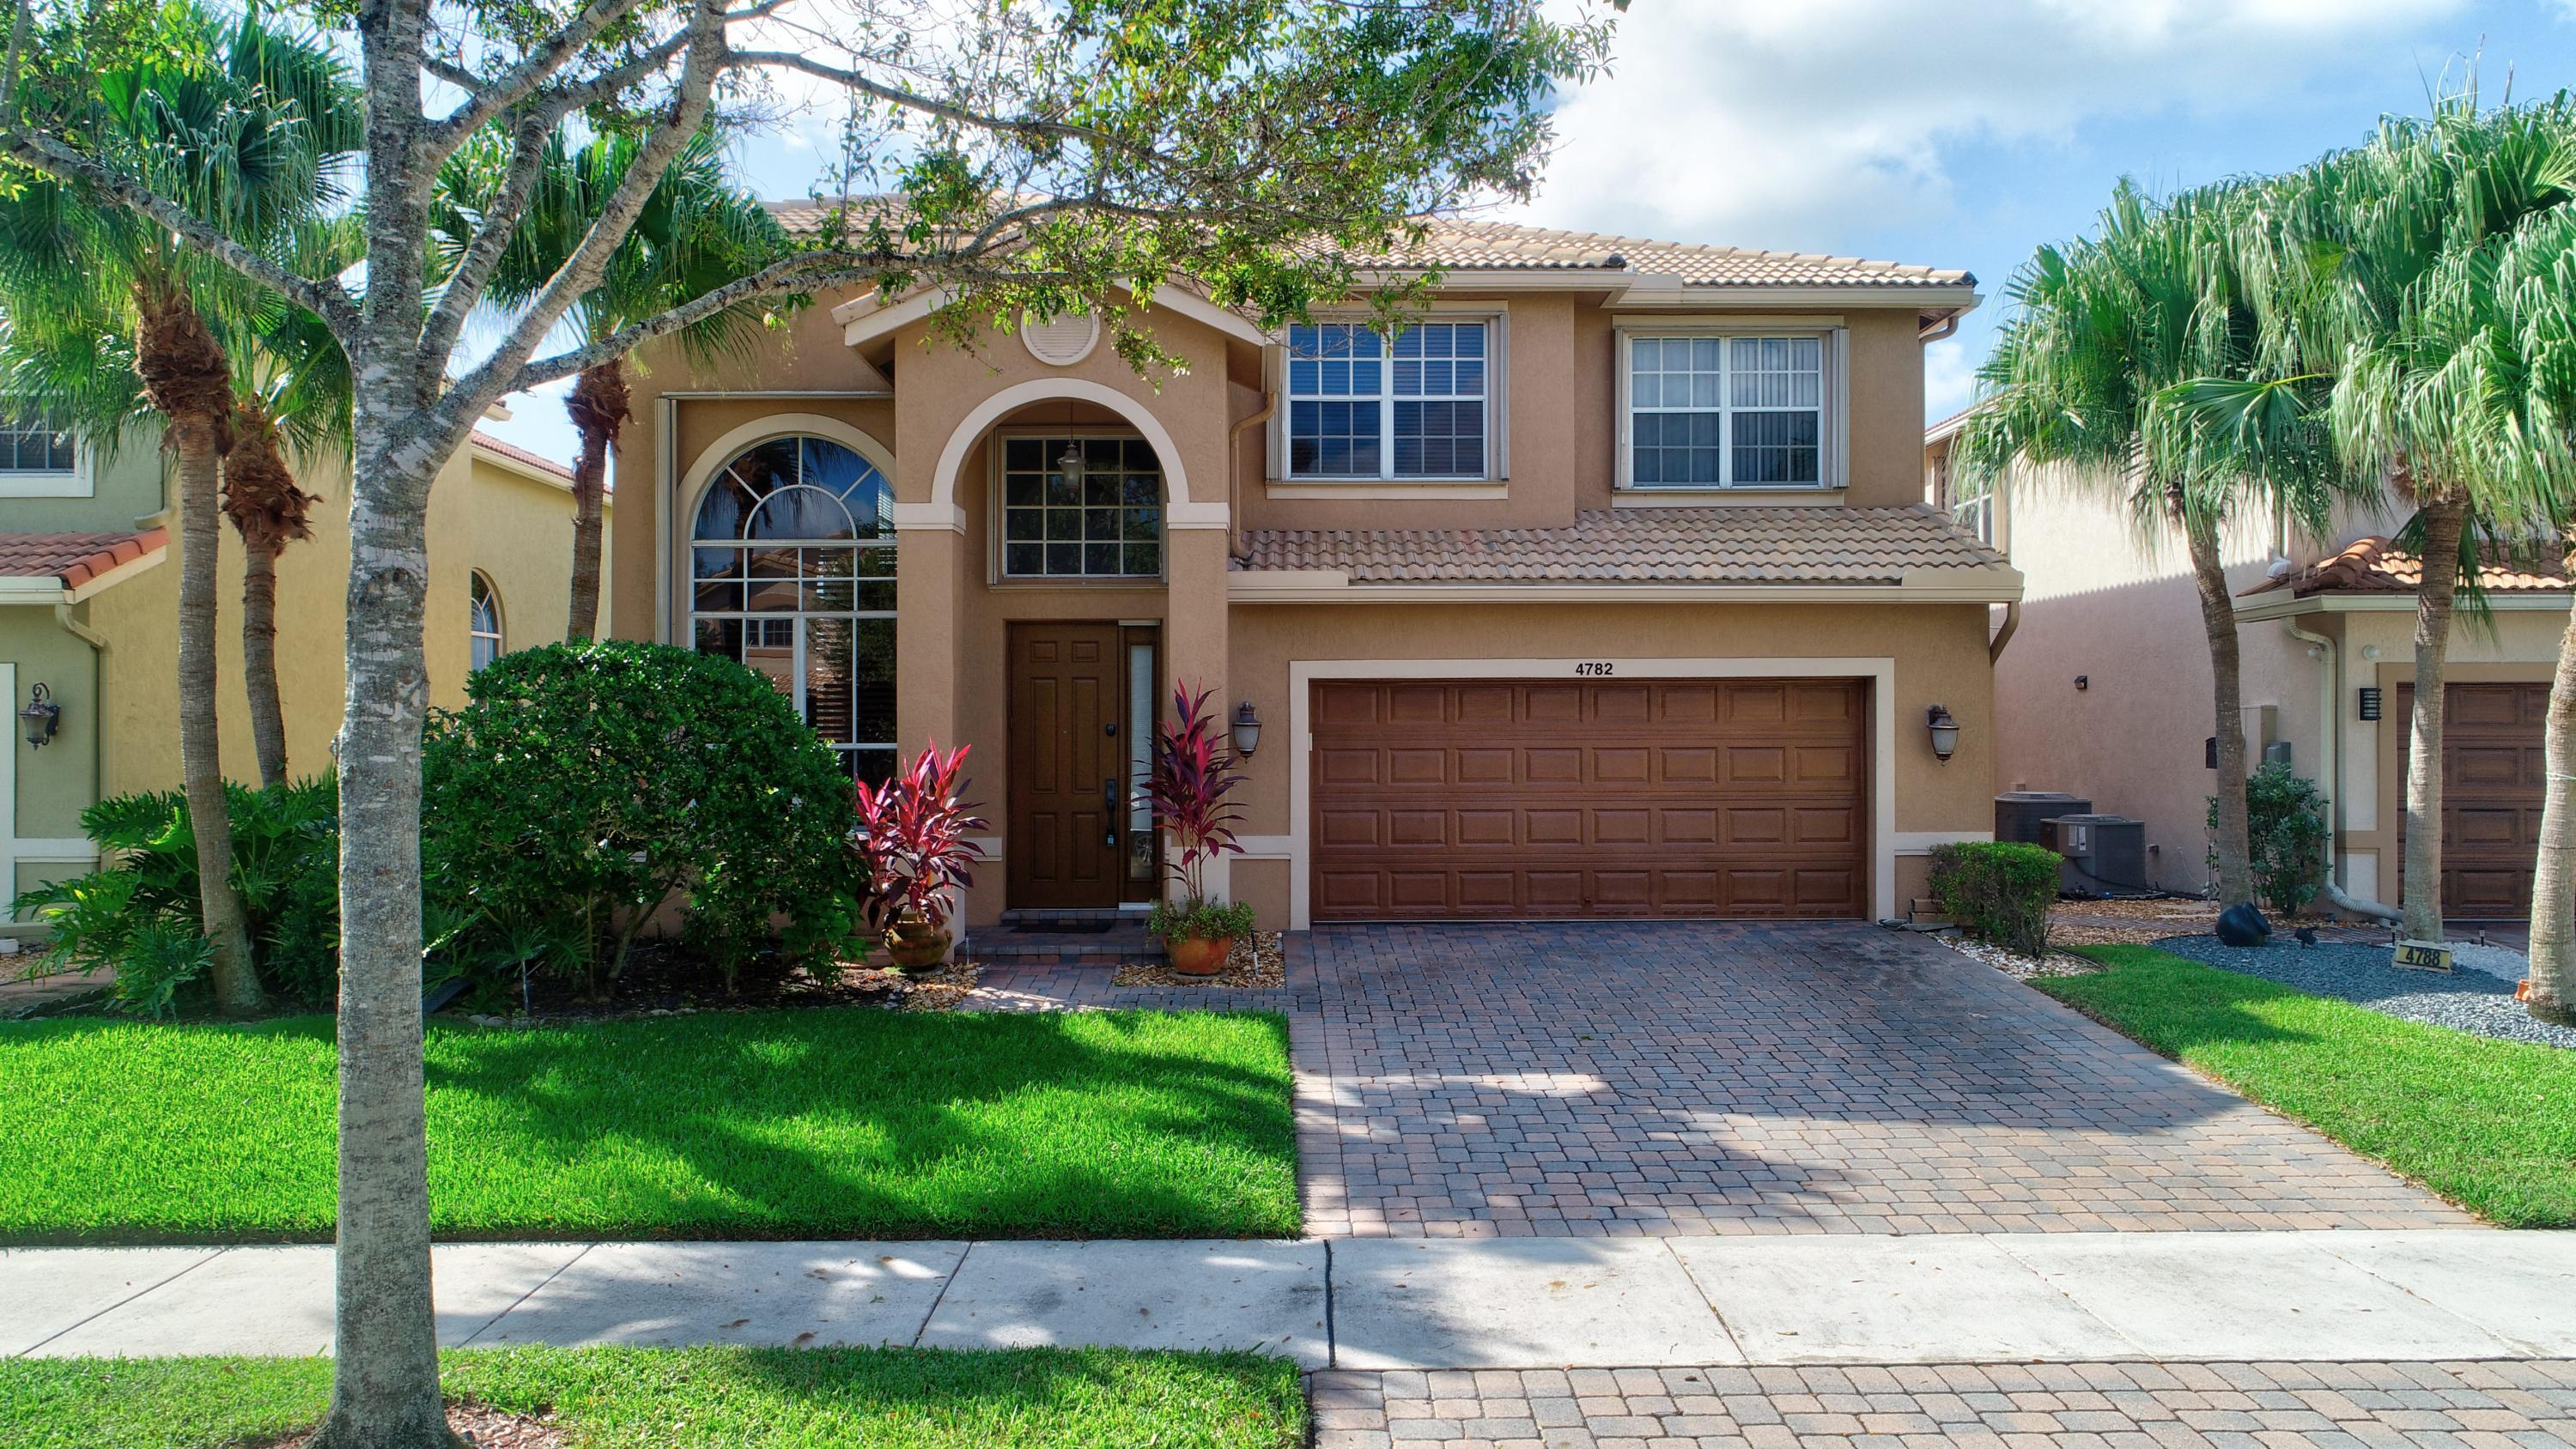 Delray Beach: The Colony - listed at 495,000 (4782 N Classical Blvd)